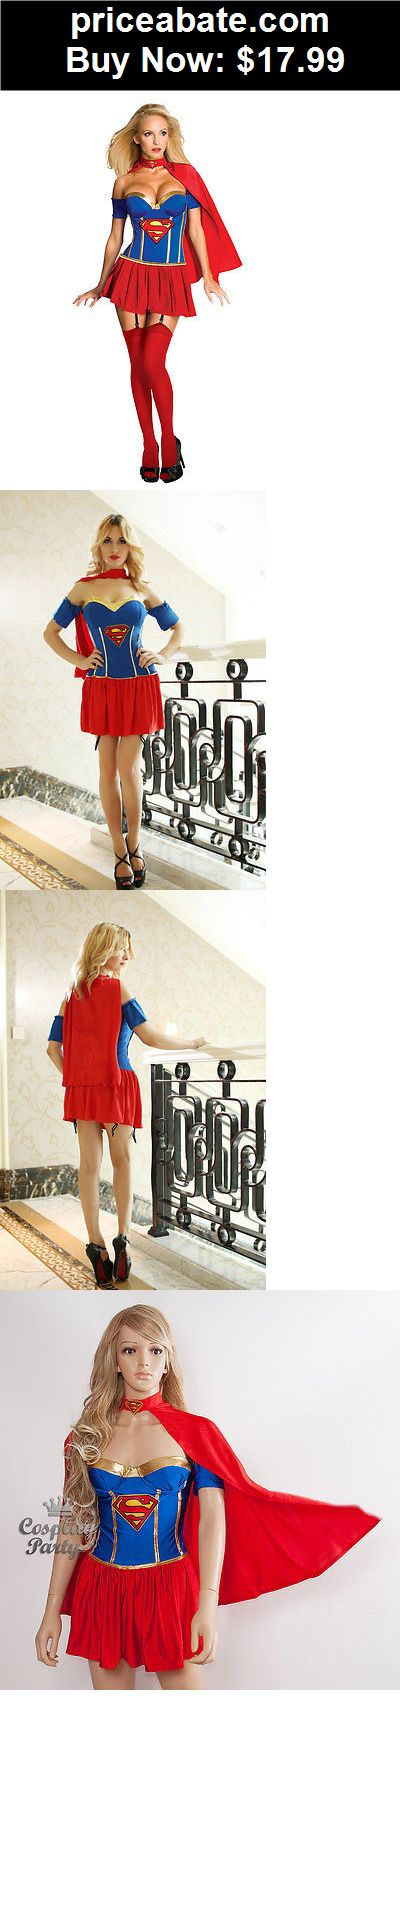 Women-Costumes: Sexy Supergirl Superwoman Dress Outfit Costume for Cosplay & Halloween Party NEW - BUY IT NOW ONLY $17.99